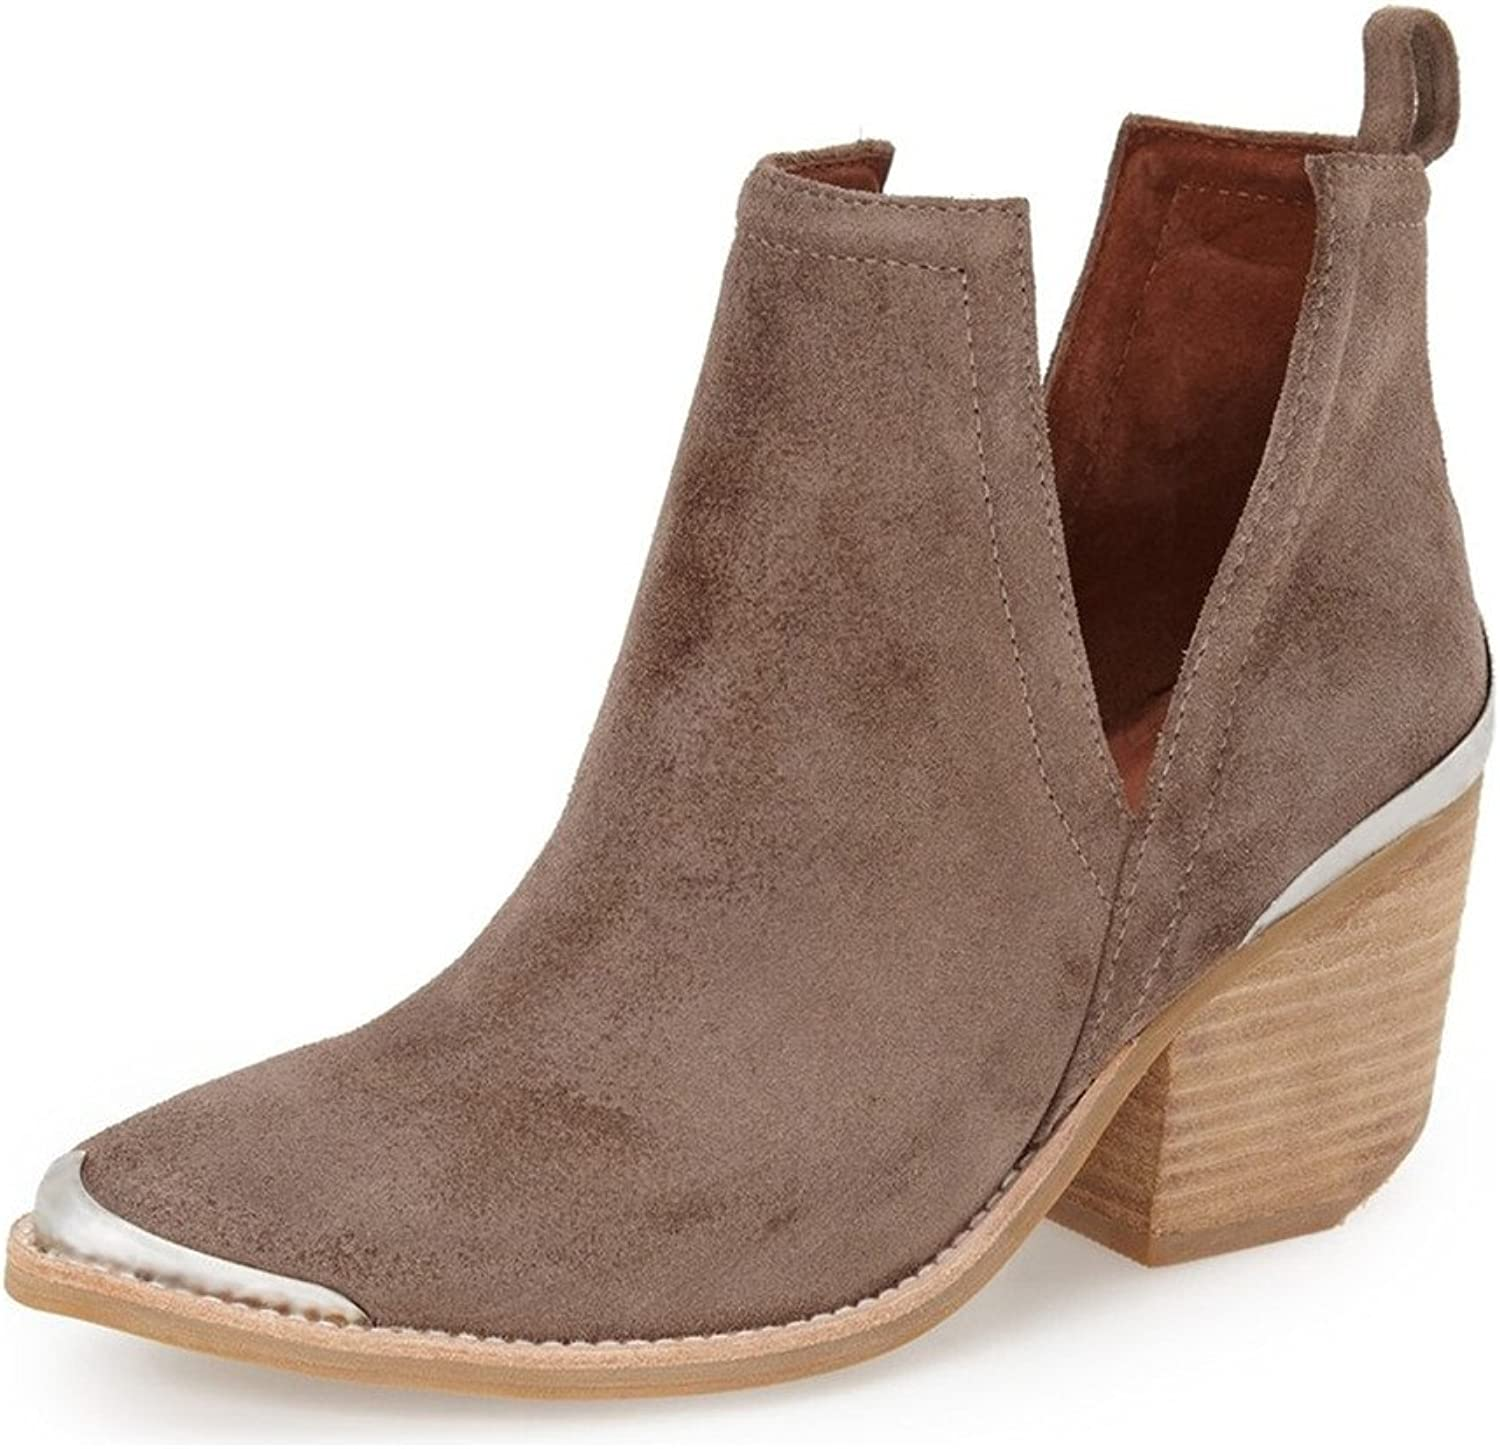 YDN Women Ankle Booties Low Heel Suede Stacked Boots Cut Out shoes with Metal Toe